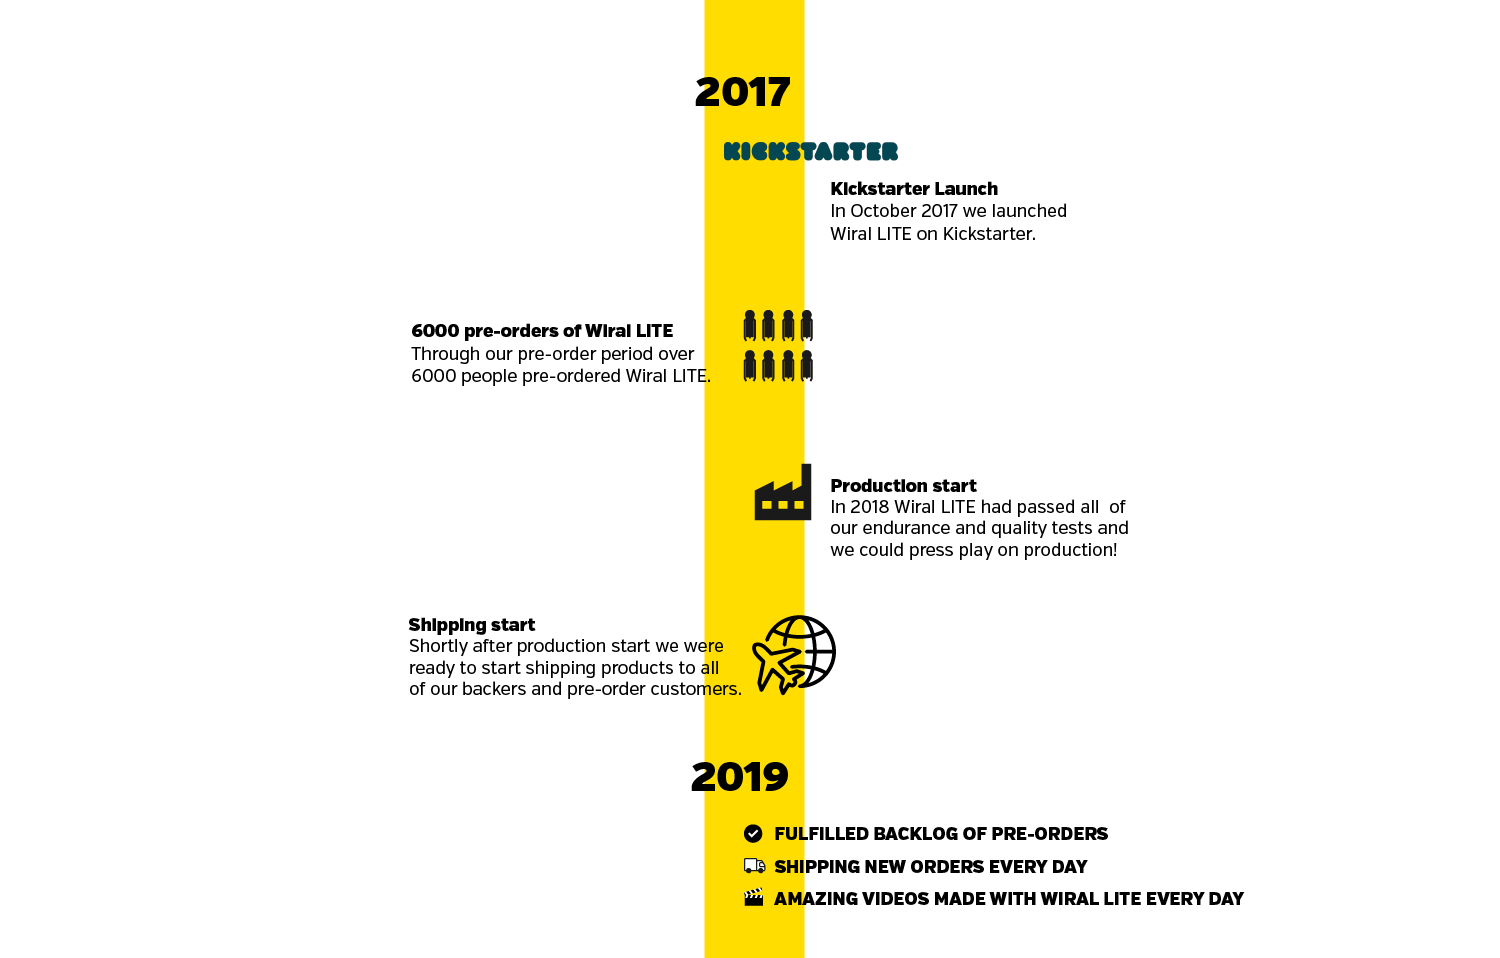 Timeline of Wiral from Kickstarter launch in 2017 up until today